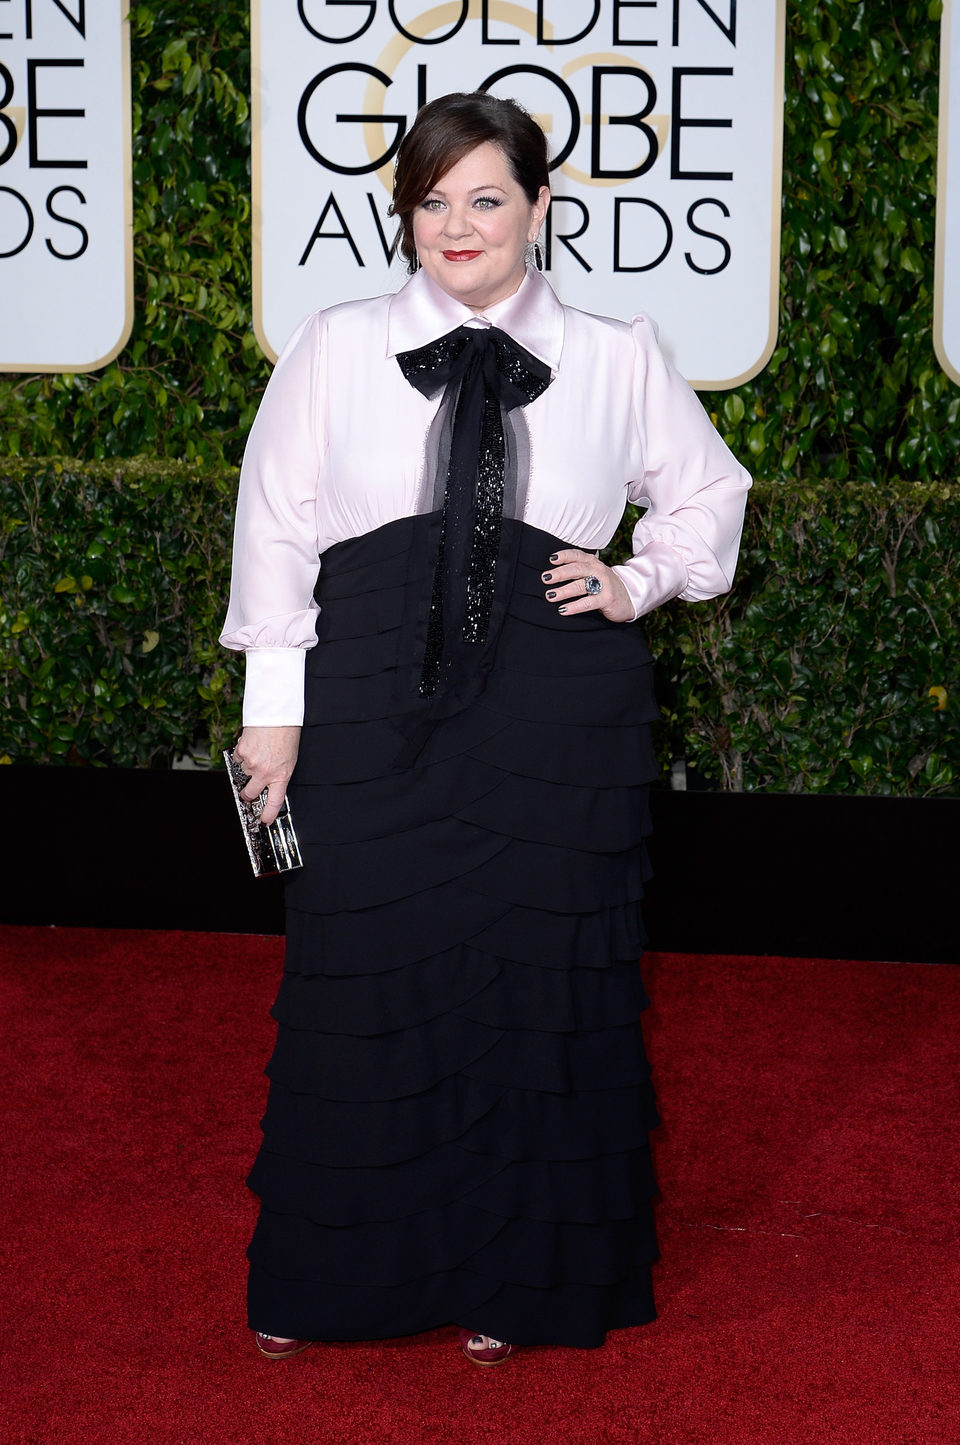 Melissa McCarthy at the Golden Globes 2015 red carpet